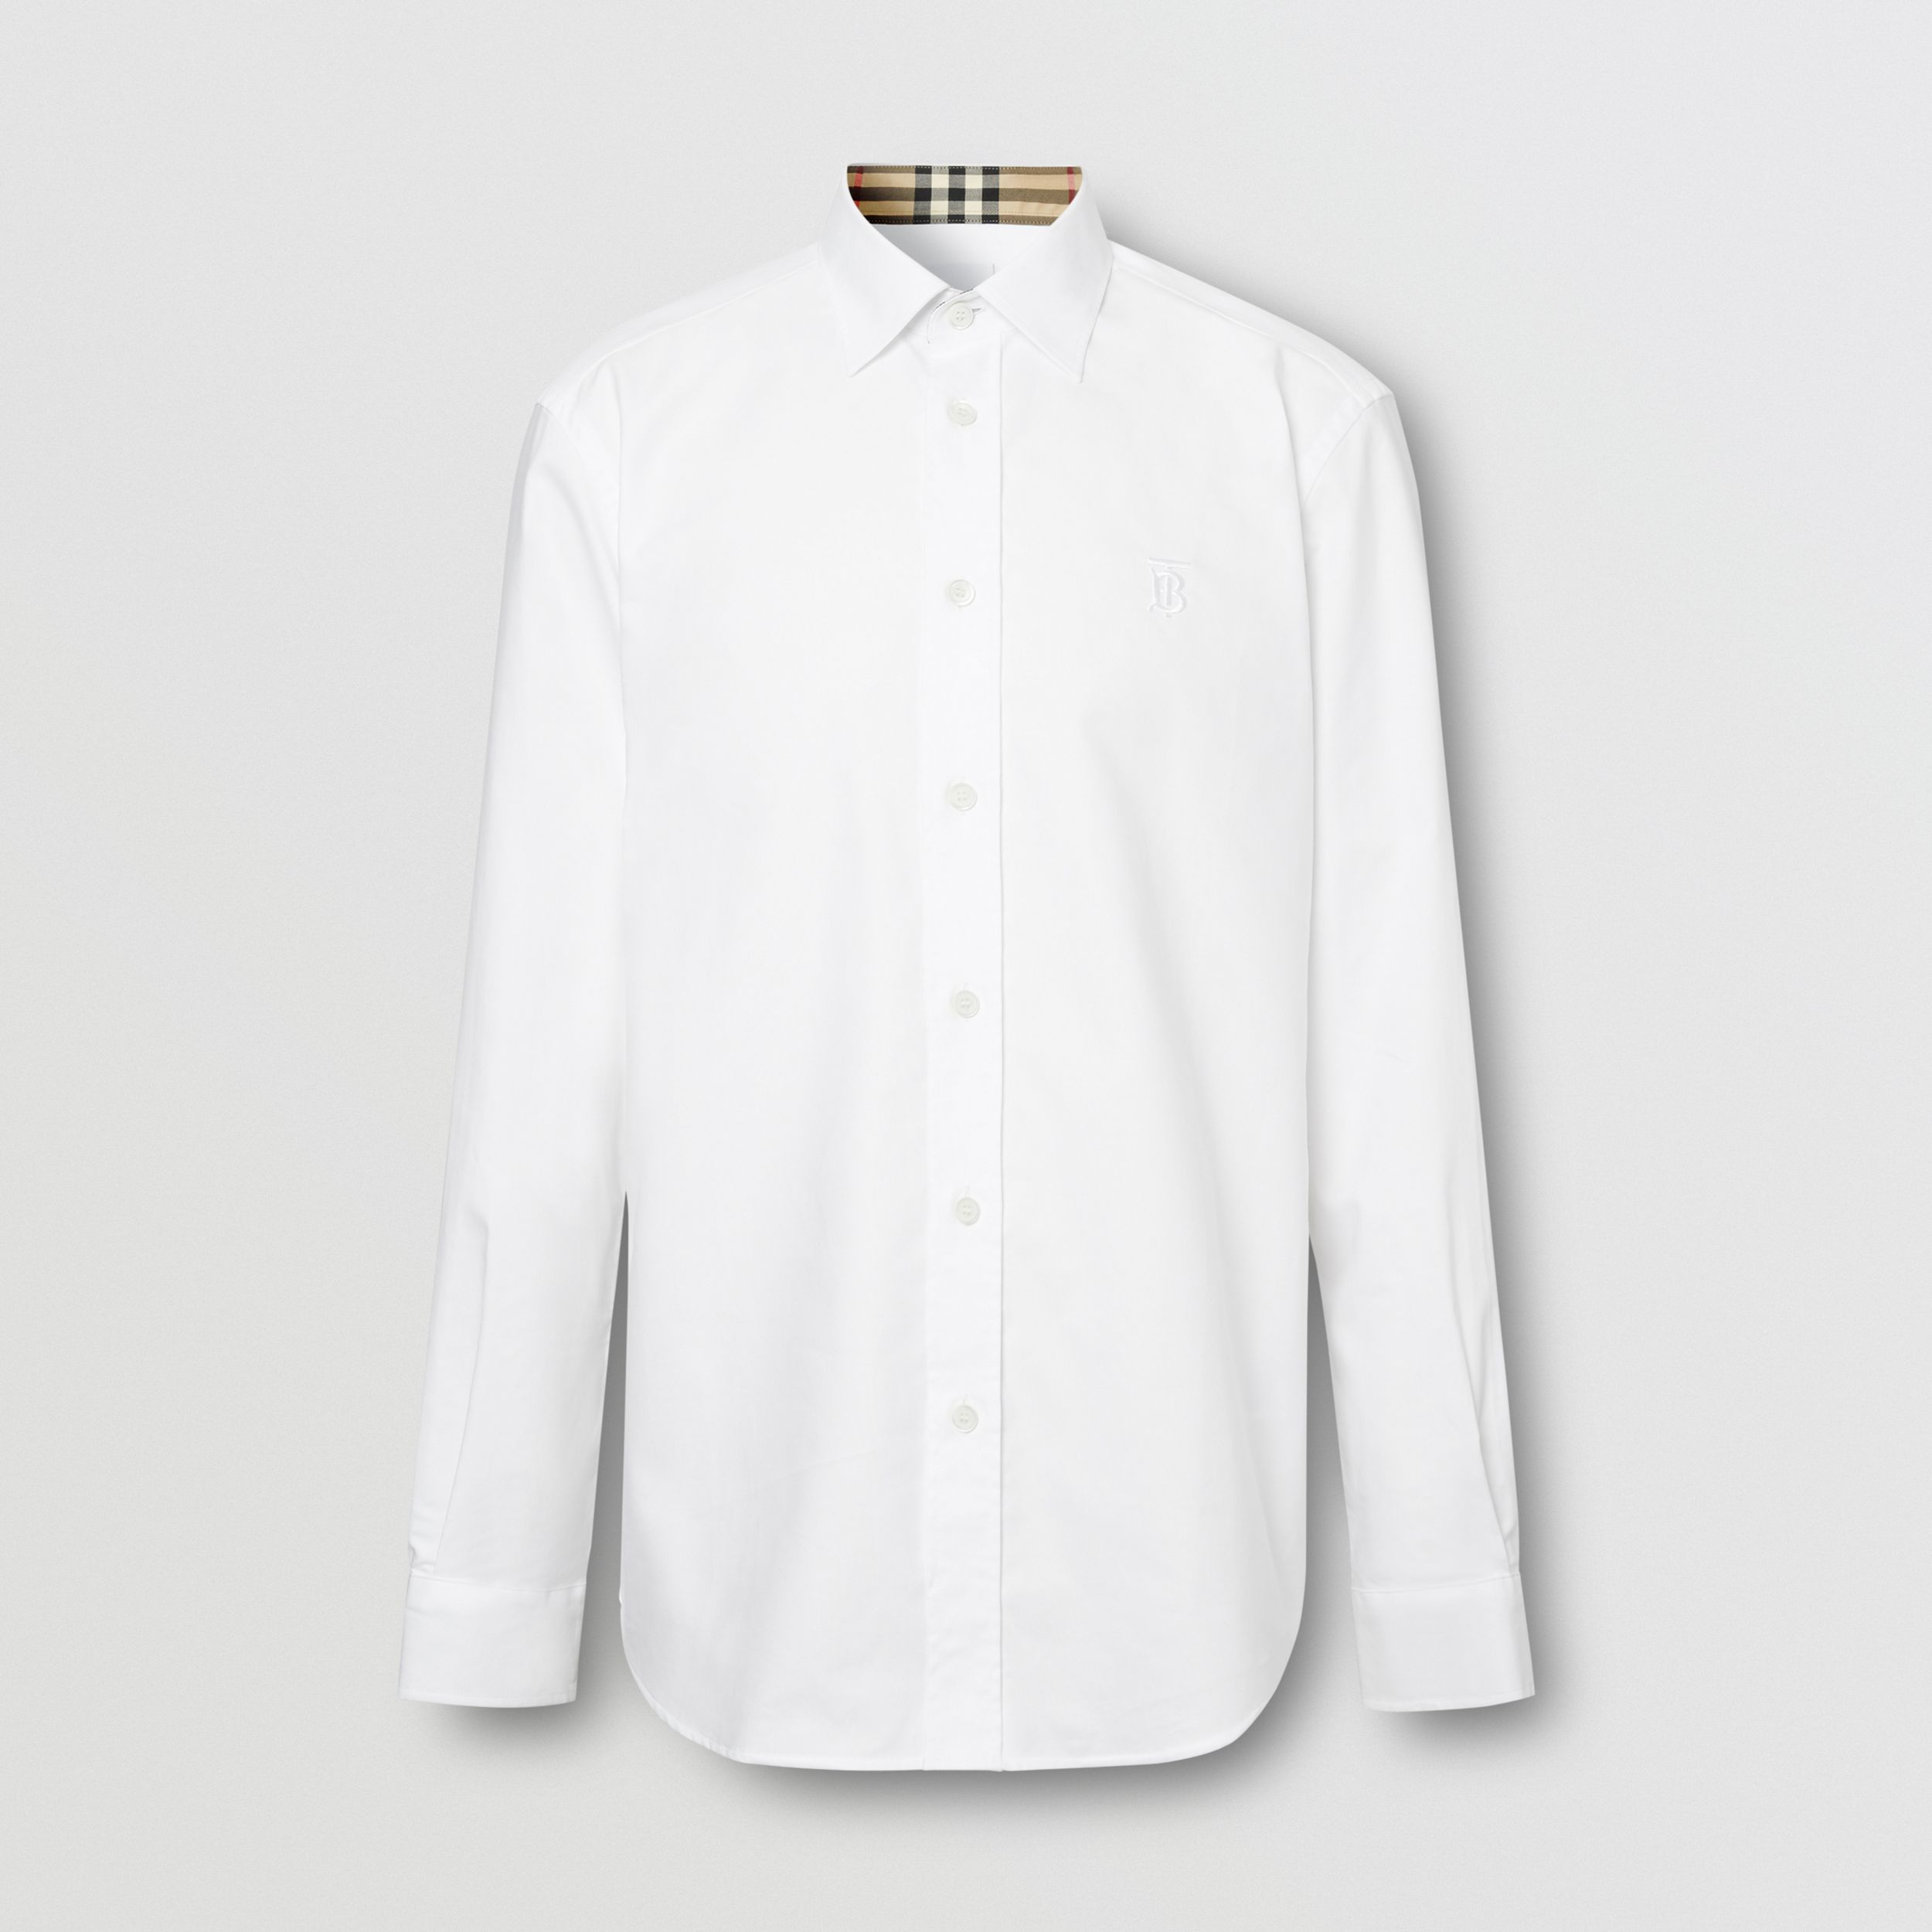 Monogram Motif Cotton Oxford Shirt in White - Men | Burberry Hong Kong S.A.R. - 4